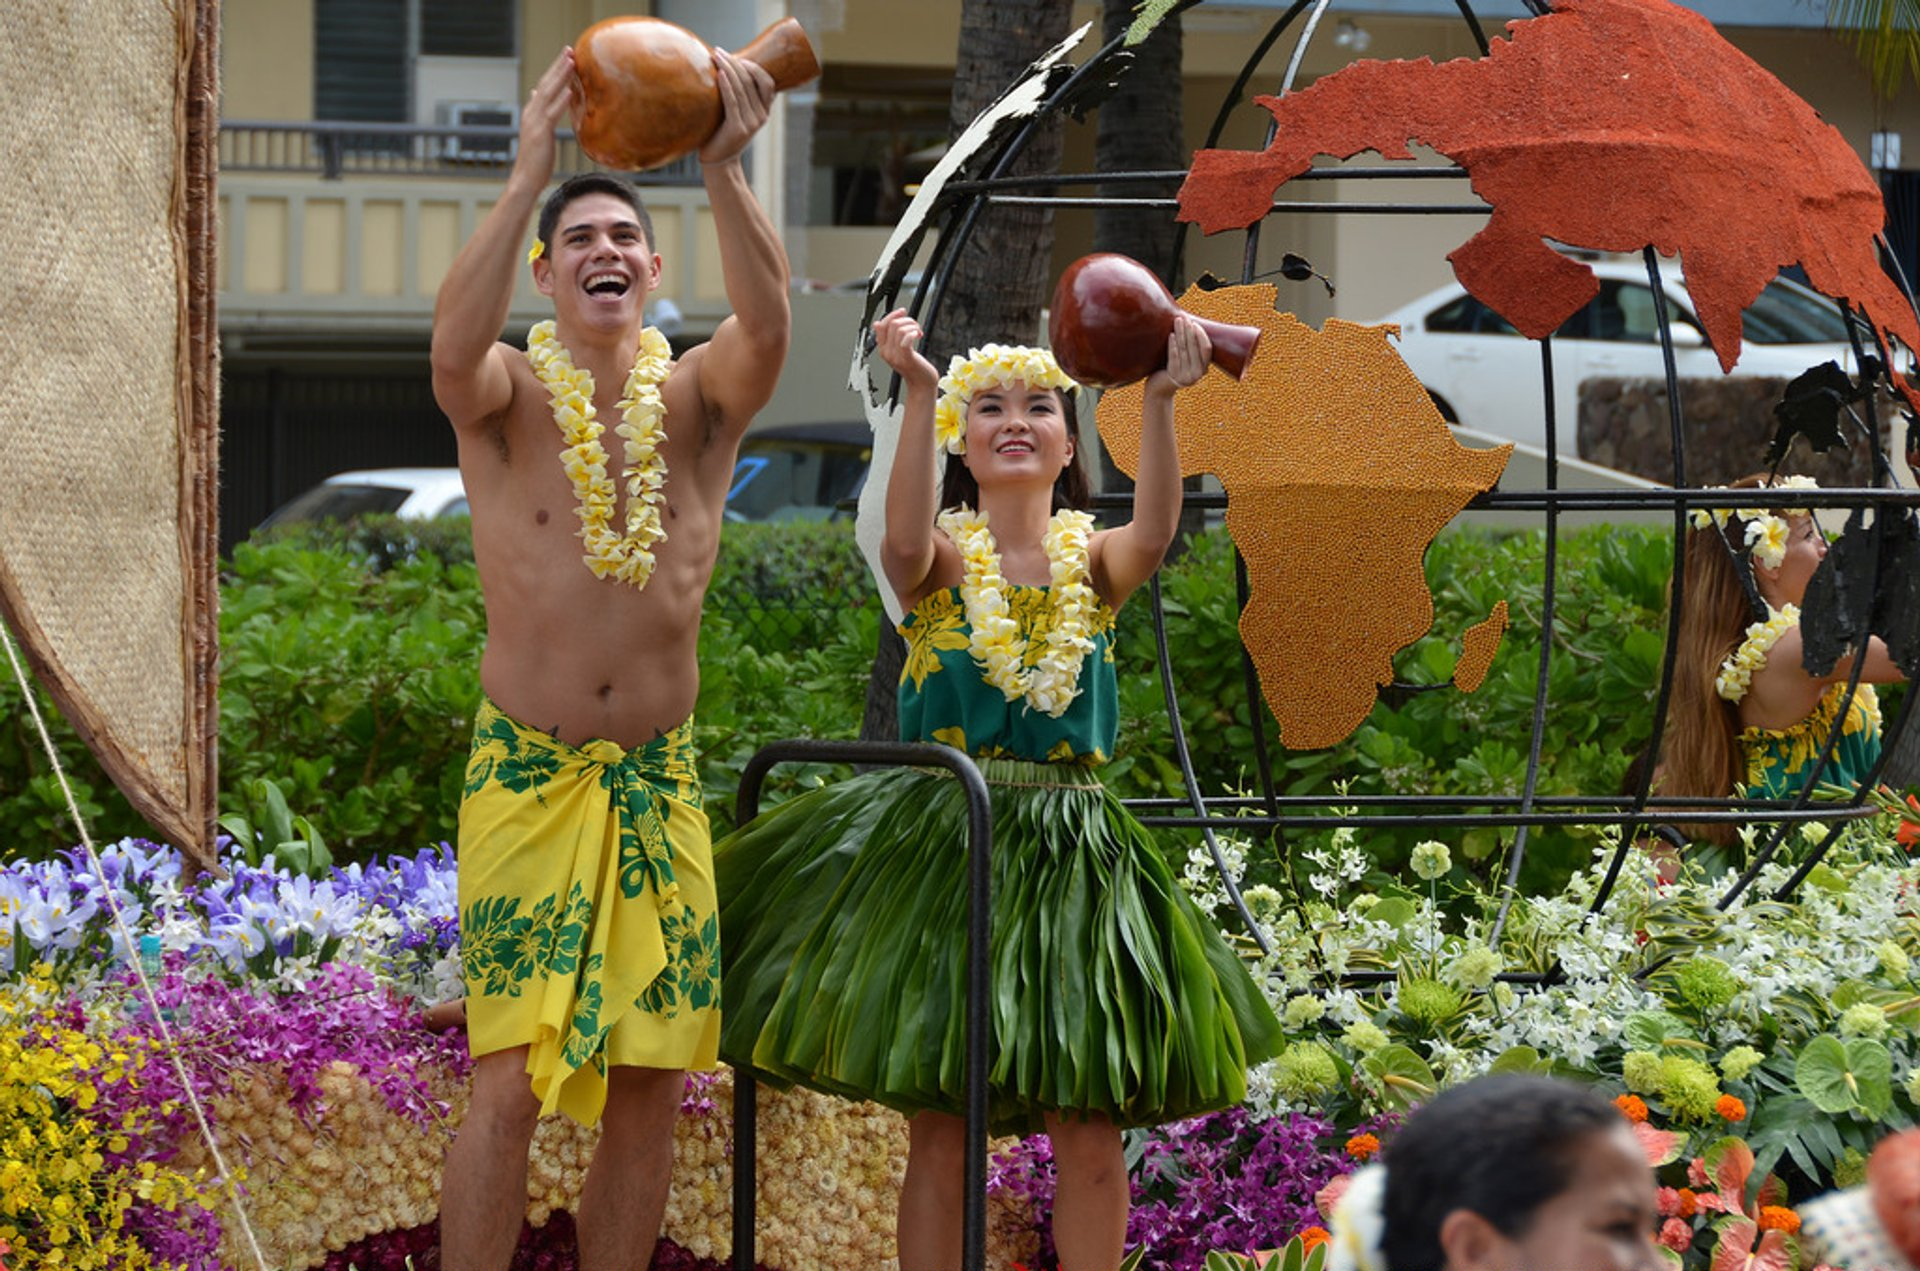 Aloha Festivals in Hawaii 2019 - Best Time